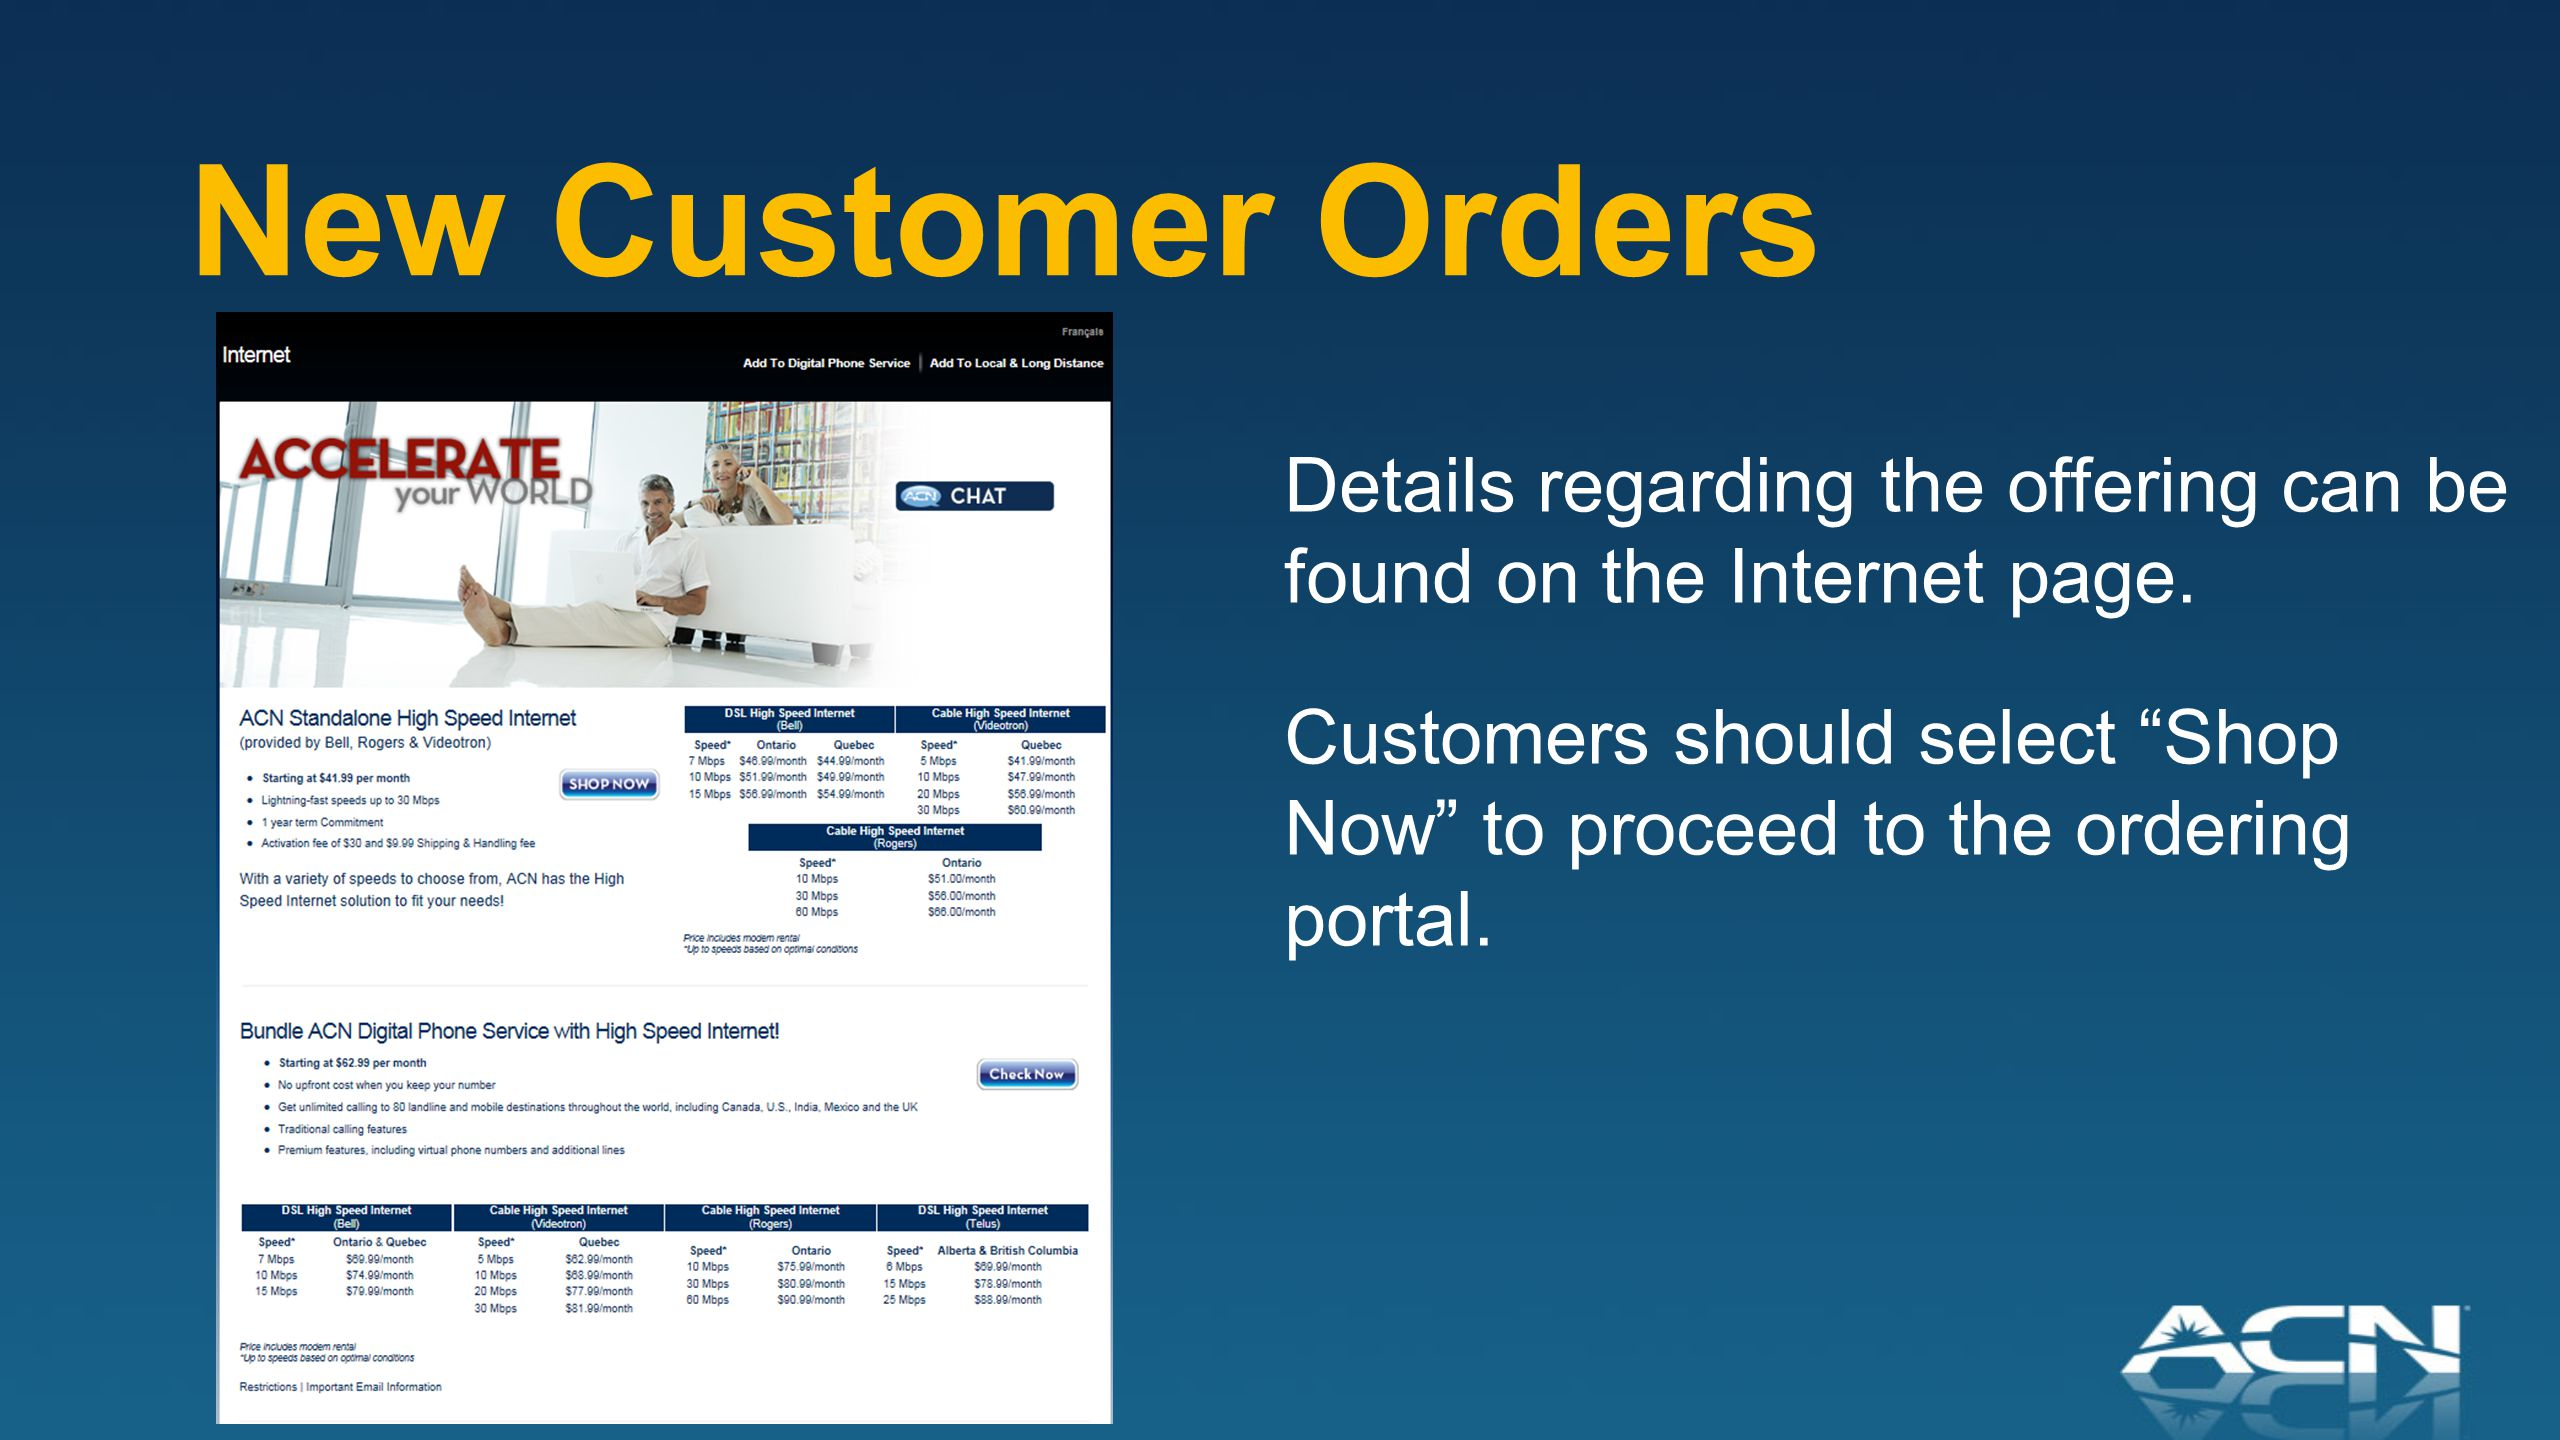 New Customer Orders Details regarding the offering can be found on the Internet page.